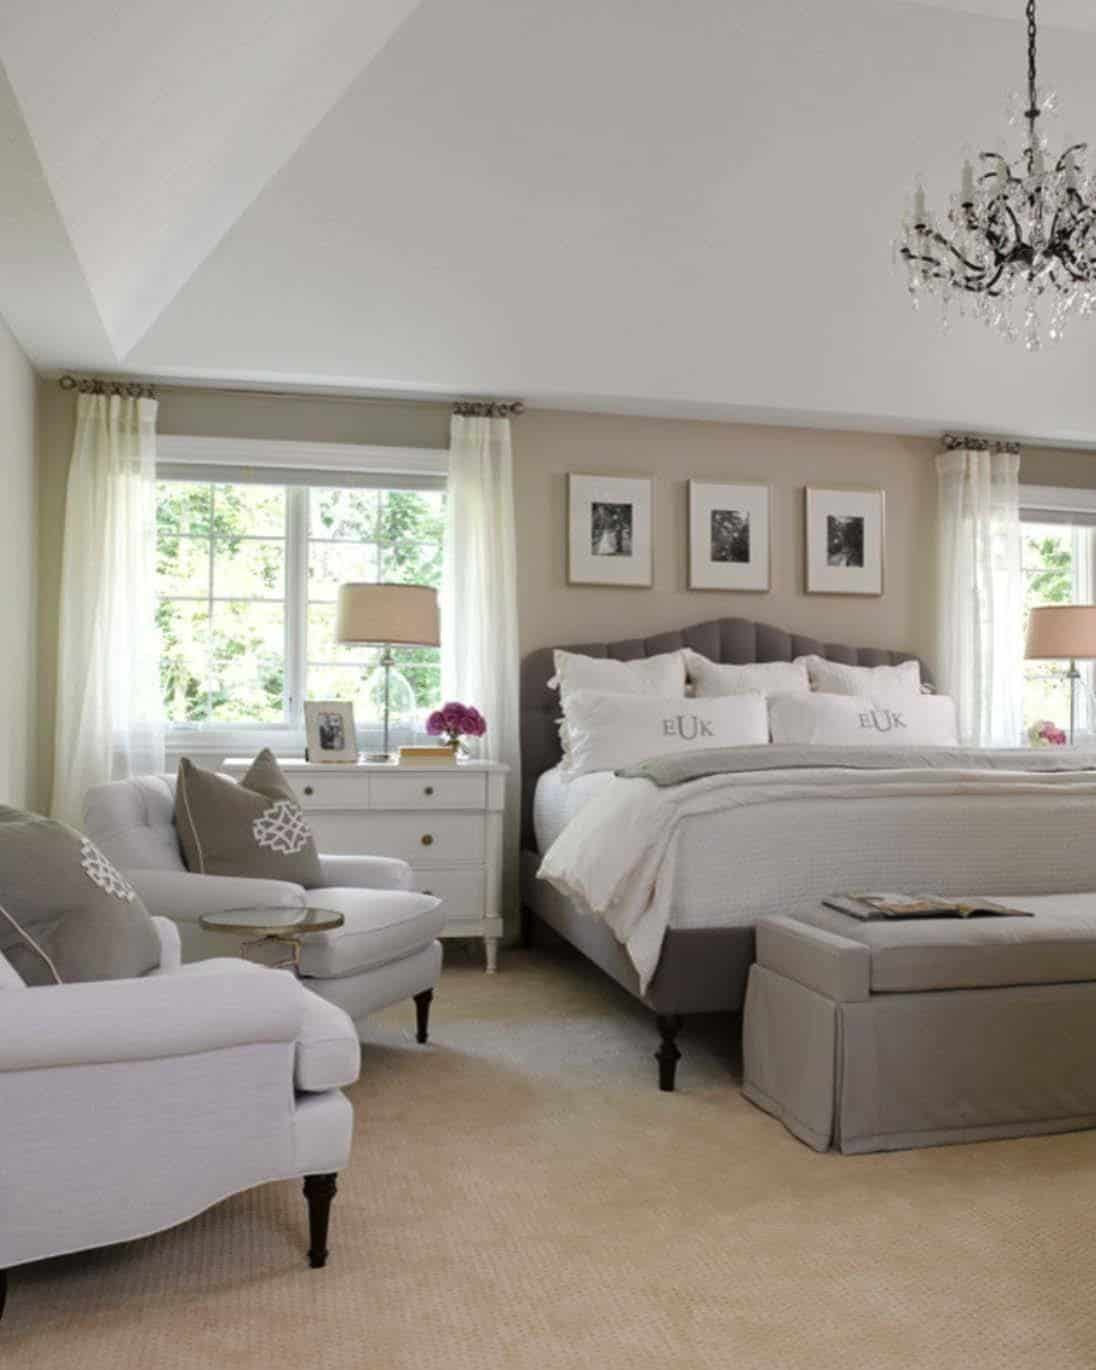 Bedroom Decorating Ideas: 35+ Spectacular Neutral Bedroom Schemes For Relaxation